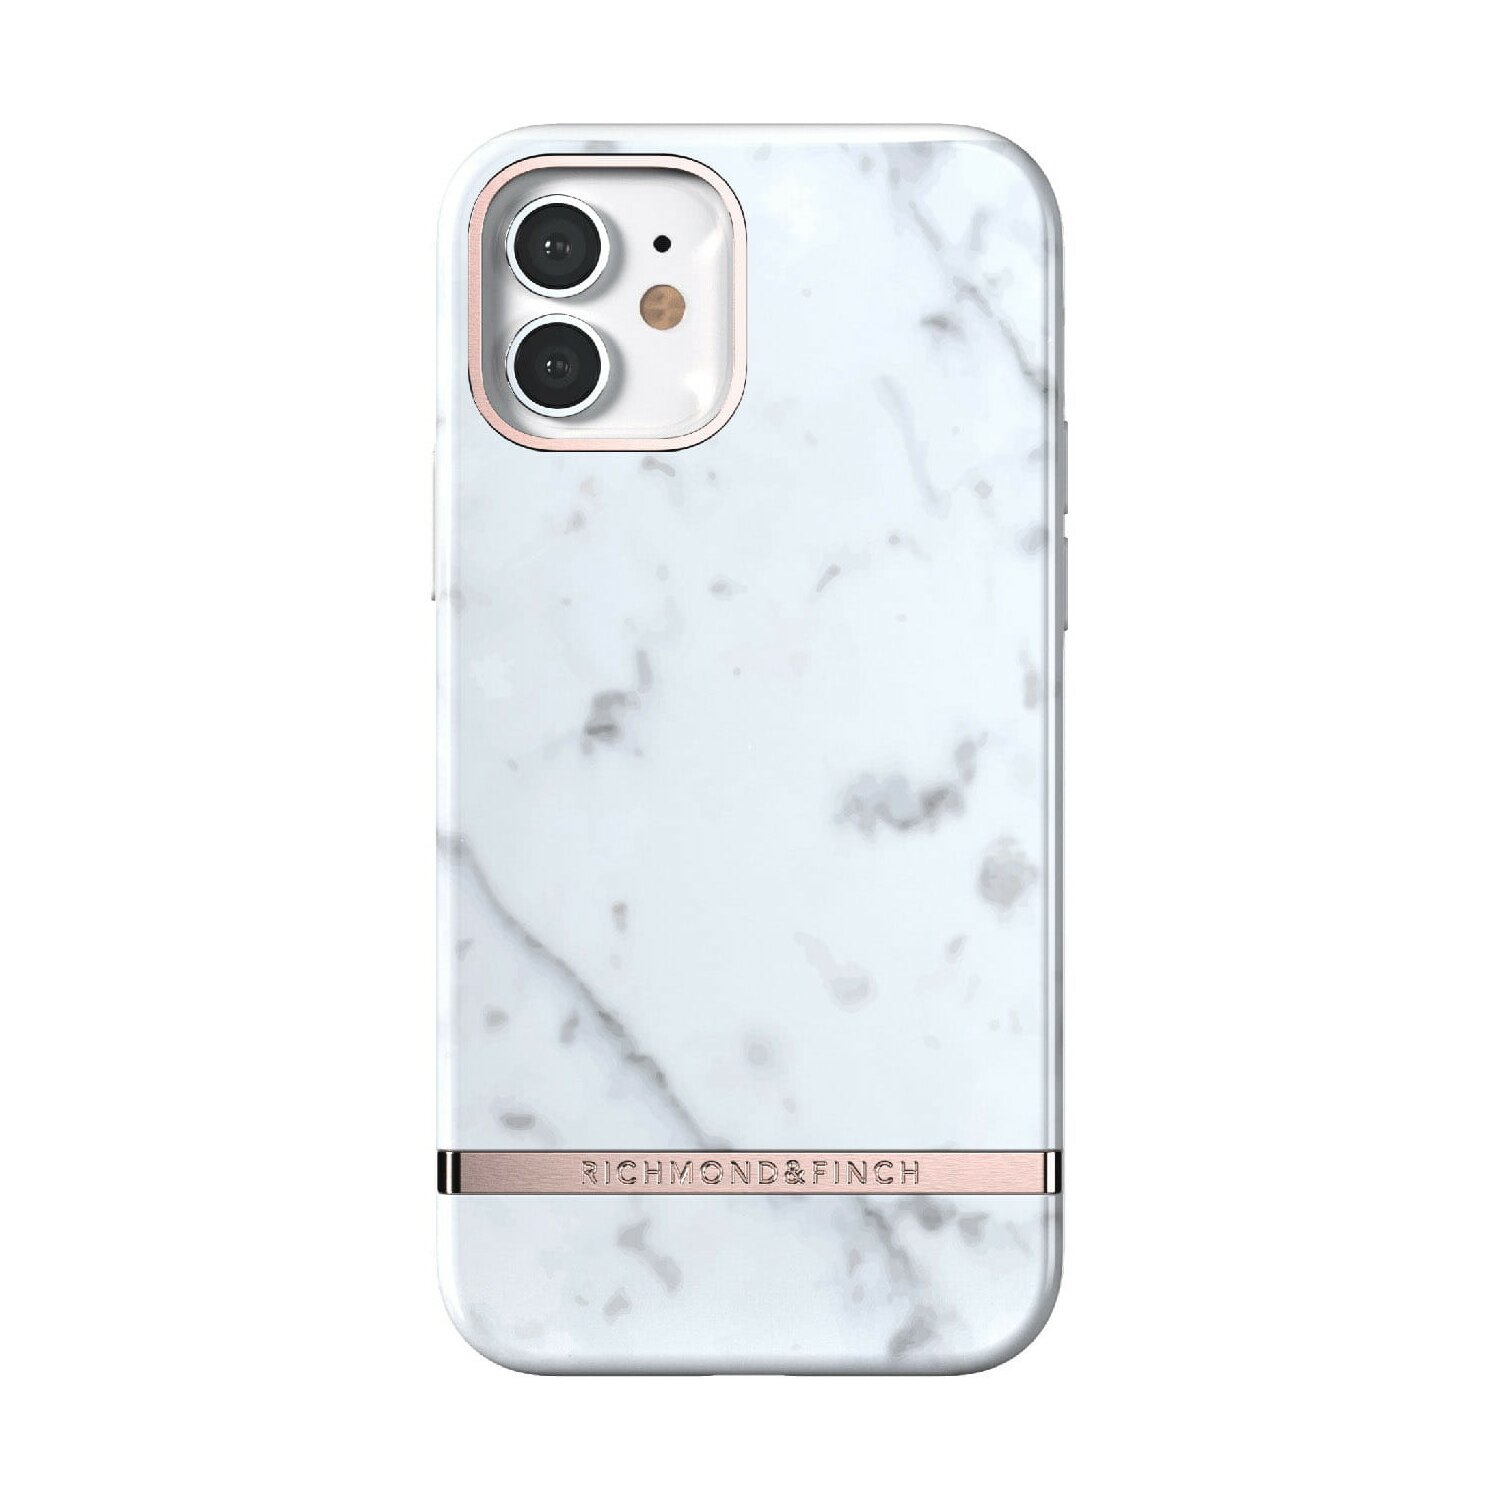 Etui RICHMOND & FINCH White Marble do iPhone 12/iPhone 12 Pro